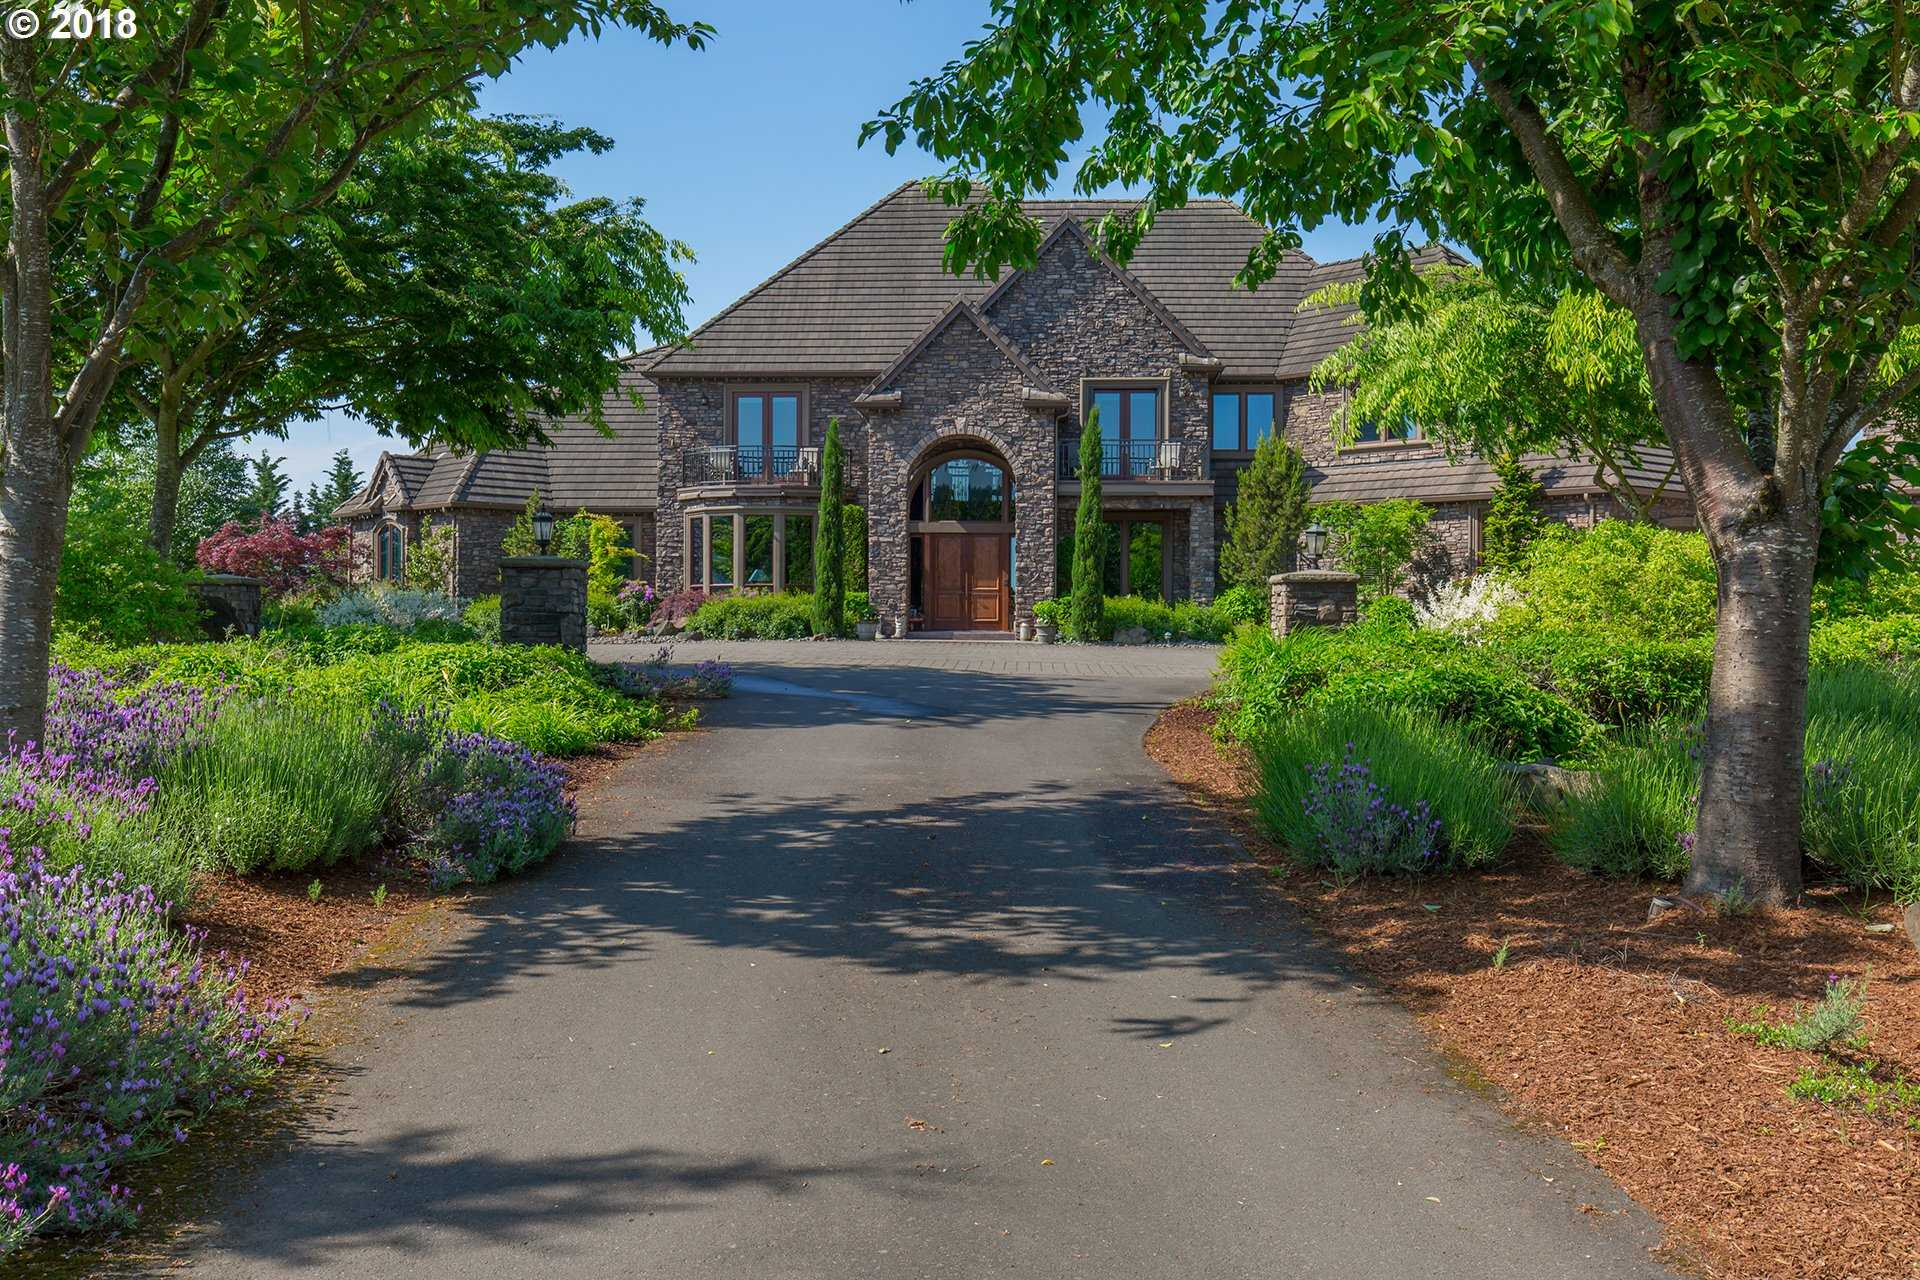 $3,285,000 - 7Br/8Ba -  for Sale in West Linn